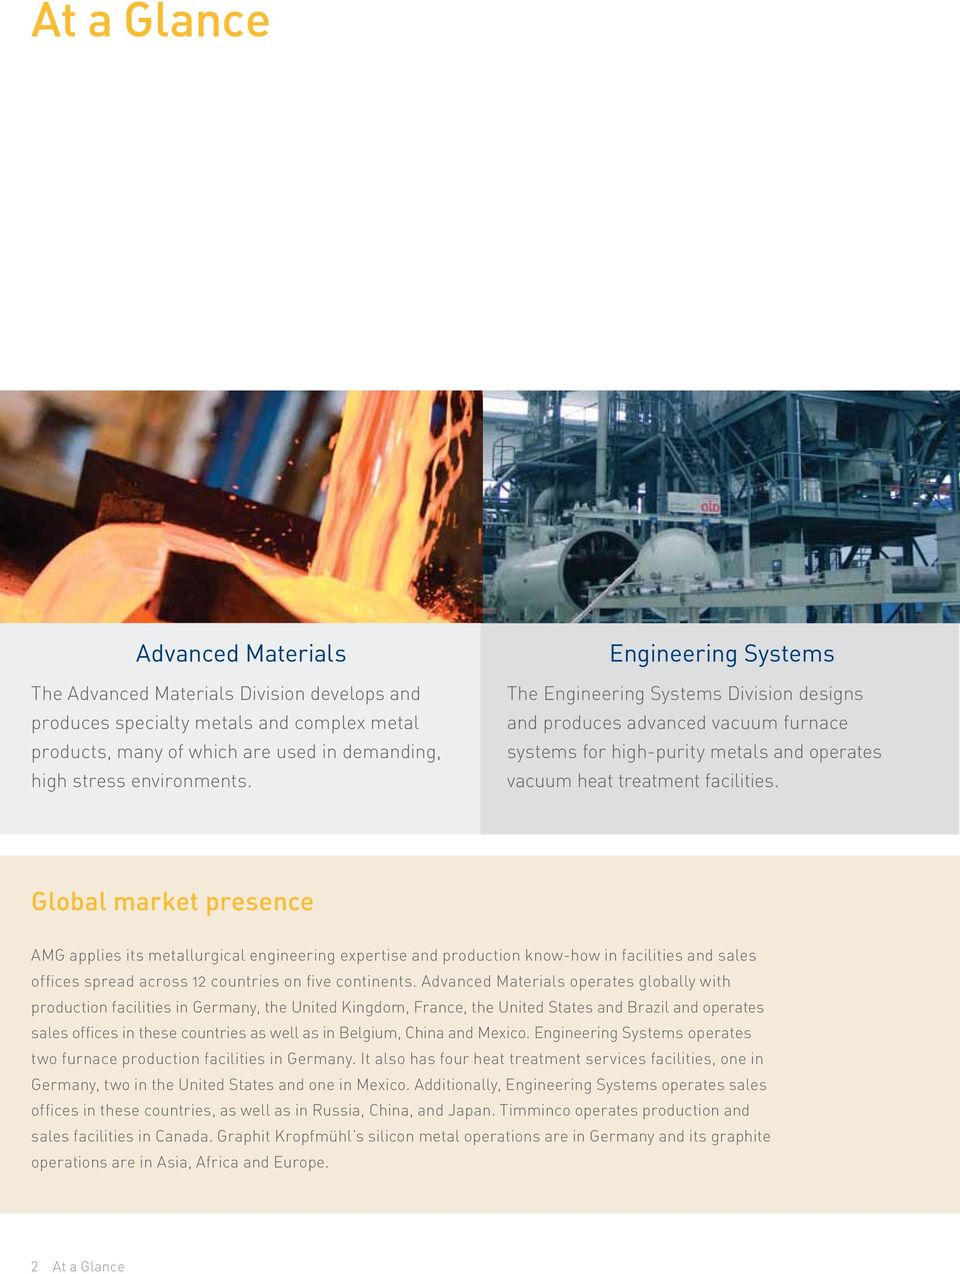 Global market presence AMG applies its metallurgical engineering expertise and production know-how in facilities and sales offices spread across 12 countries on five continents.